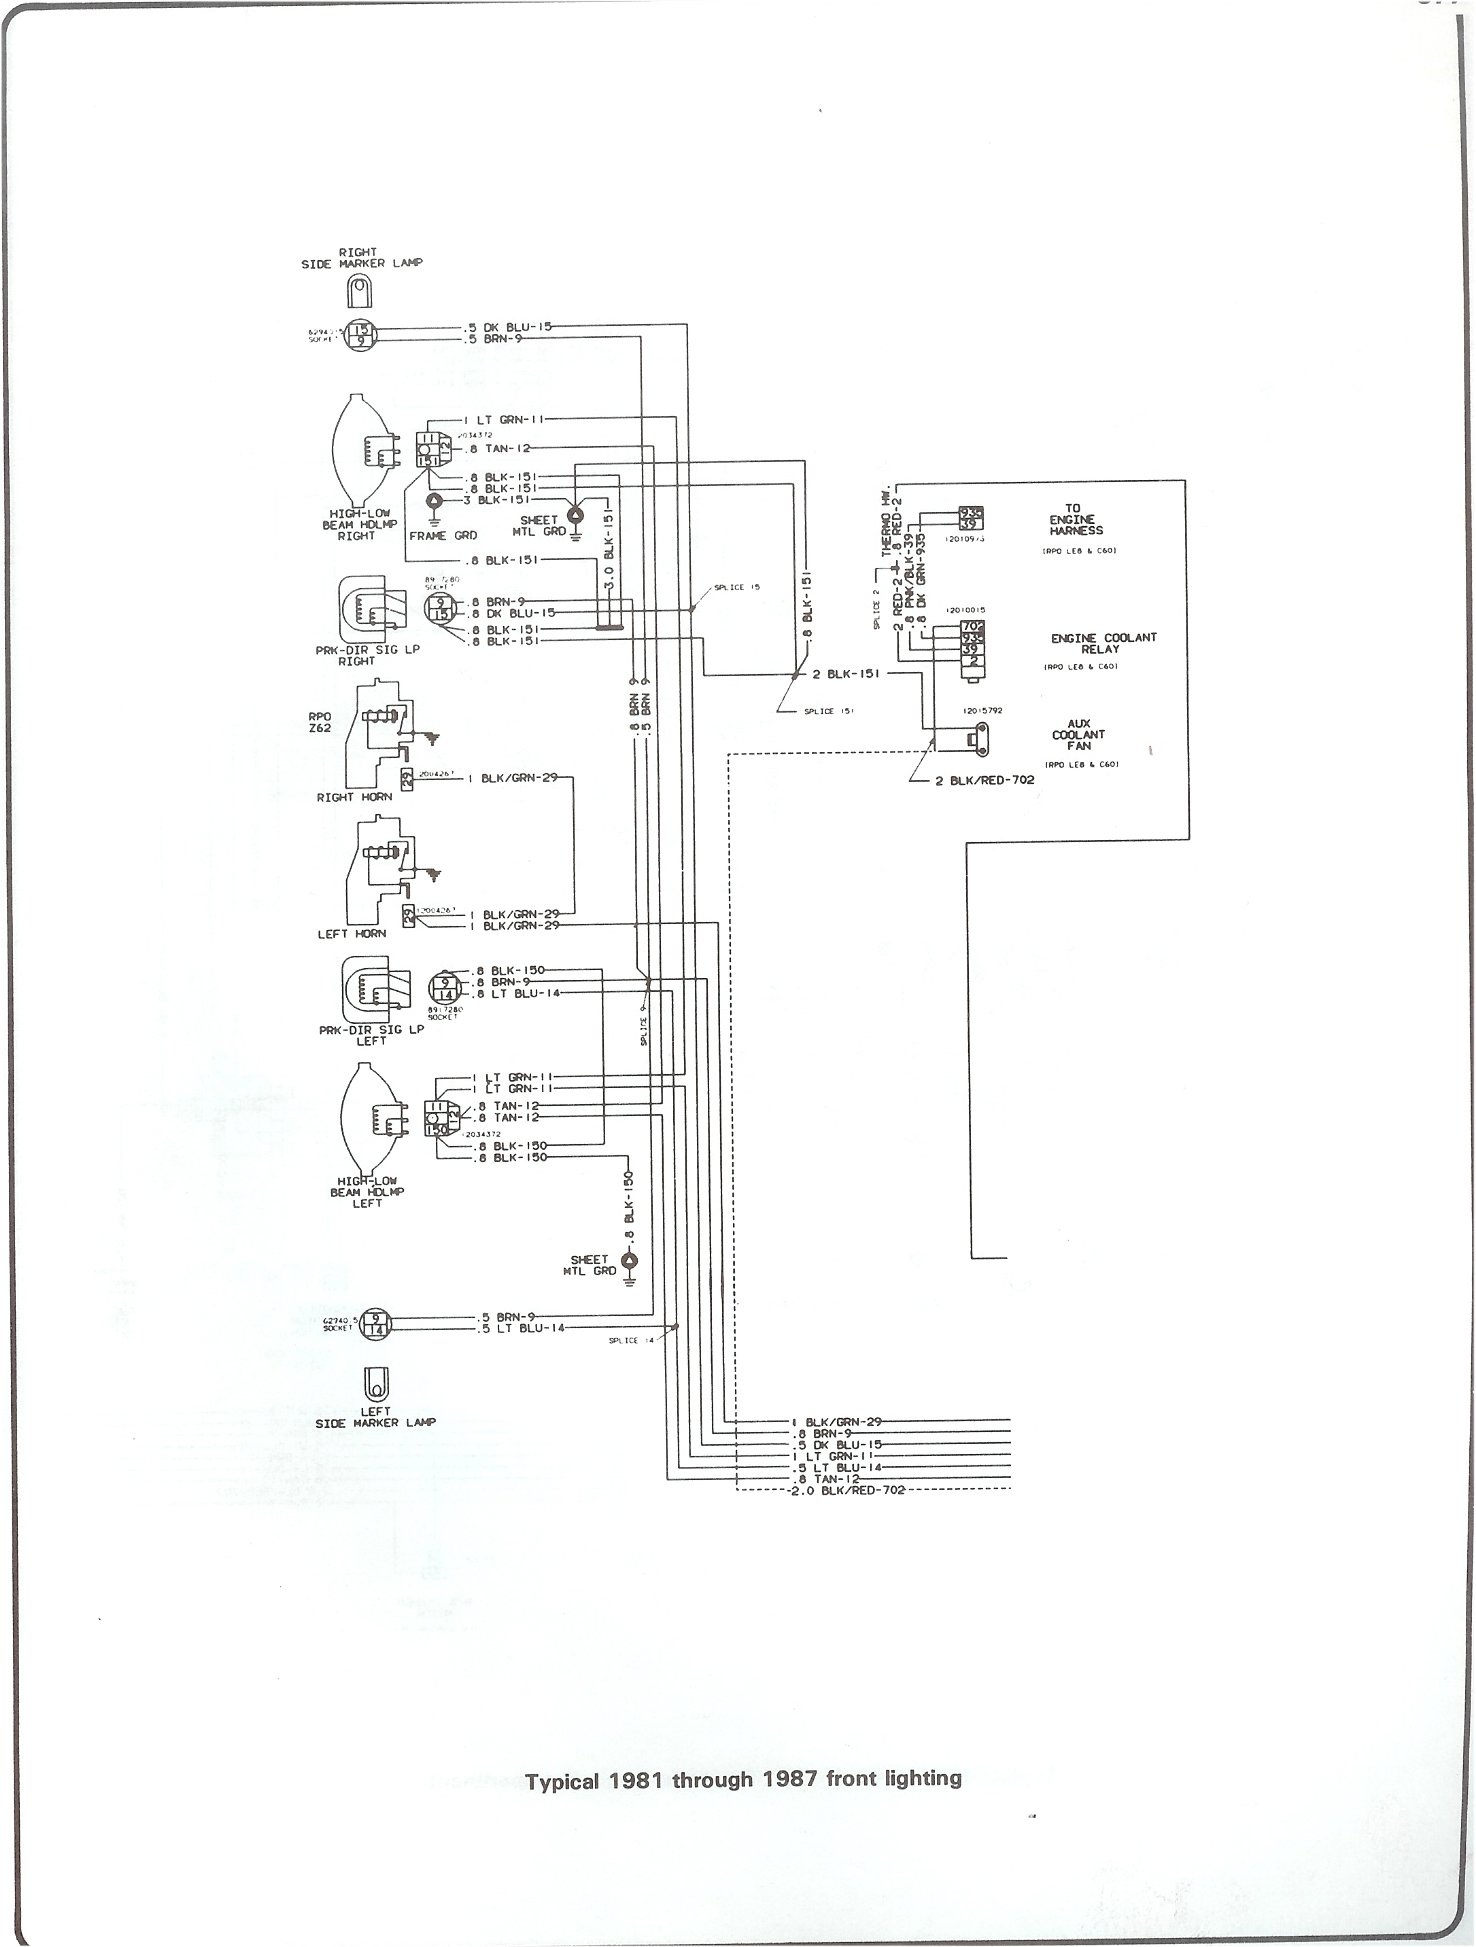 Complete 73-87 Wiring Diagrams on 1965 chevrolet truck wiring diagram, 1976 chevrolet truck wiring diagram, 1962 chevrolet truck wiring diagram, 1977 chevrolet truck brochure, 1971 chevrolet truck wiring diagram, 1977 chevrolet truck parts, 1956 chevrolet truck wiring diagram, 1977 chevrolet g30 camper van, 1954 chevrolet truck wiring diagram, 1948 chevrolet truck wiring diagram, 1959 chevrolet truck wiring diagram, 1929 chevrolet truck wiring diagram, 1969 chevrolet truck wiring diagram, 1968 chevrolet truck wiring diagram, 1979 chevrolet truck wiring diagram, 1974 chevrolet truck wiring diagram, 1996 chevrolet truck wiring diagram, 1957 chevrolet truck wiring diagram, 1998 chevrolet truck wiring diagram, 1972 chevrolet truck wiring diagram,